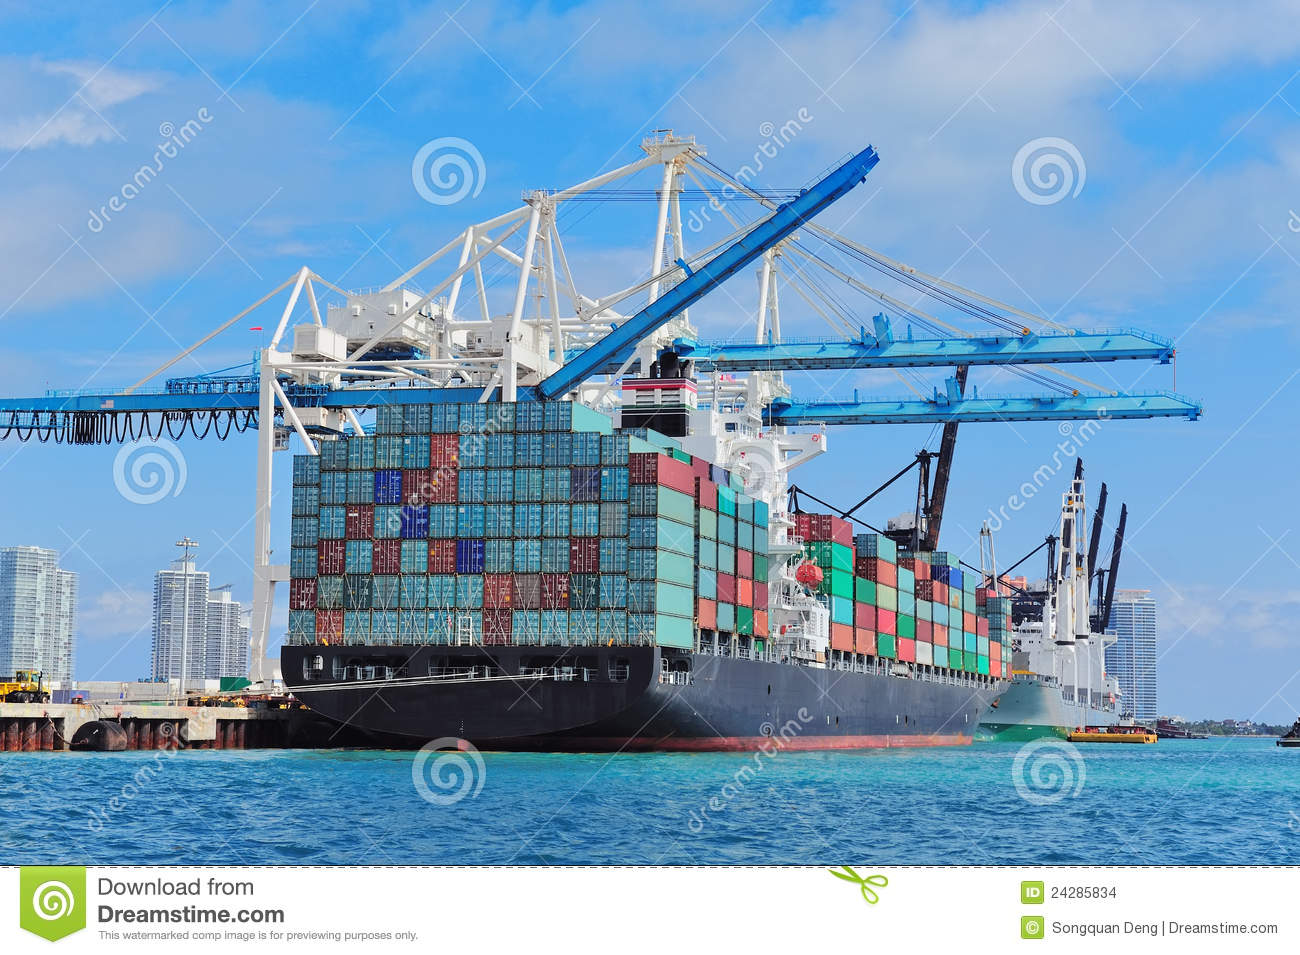 Blue Water Shipping Miami imports from Carnival Cruise Lines in Unknown through the port of Galveston, Texas. Call +1 () Import Genius. Our bill of lading data reveals the trading activities of Blue Water Shipping Miami and millions of other importers.